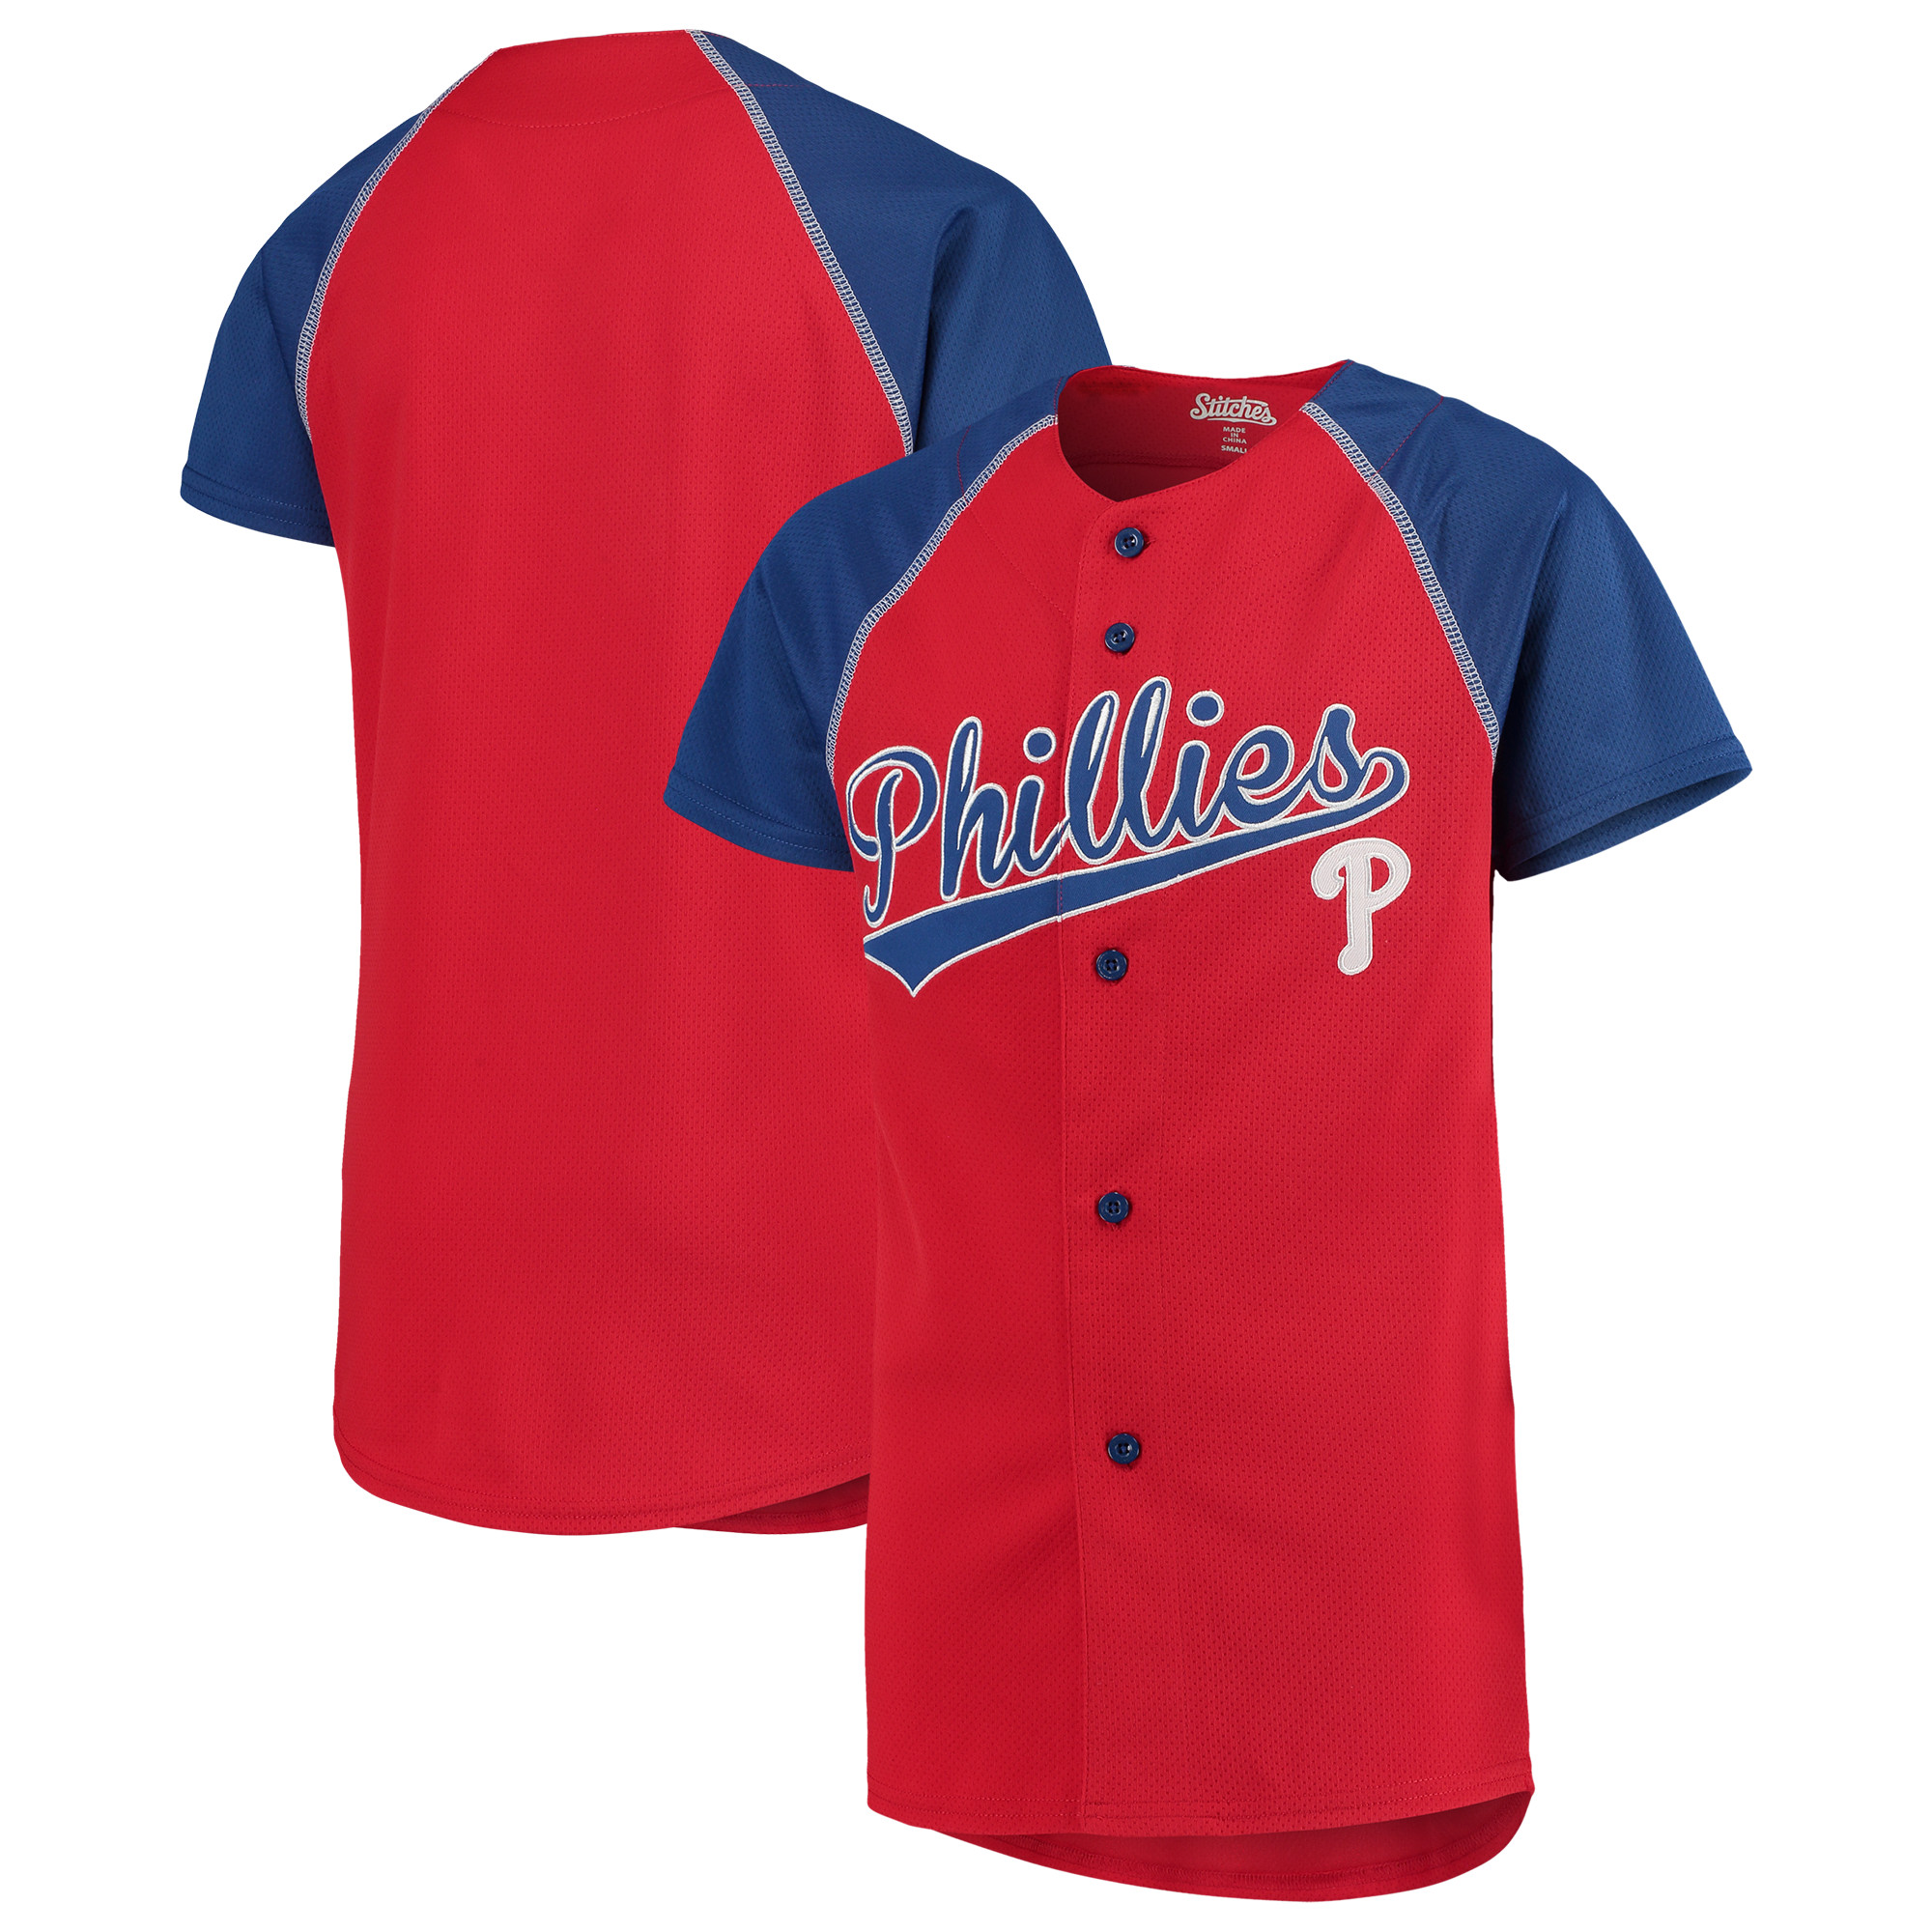 Philadelphia Phillies Stitches Youth Team Jersey - Red/Royal